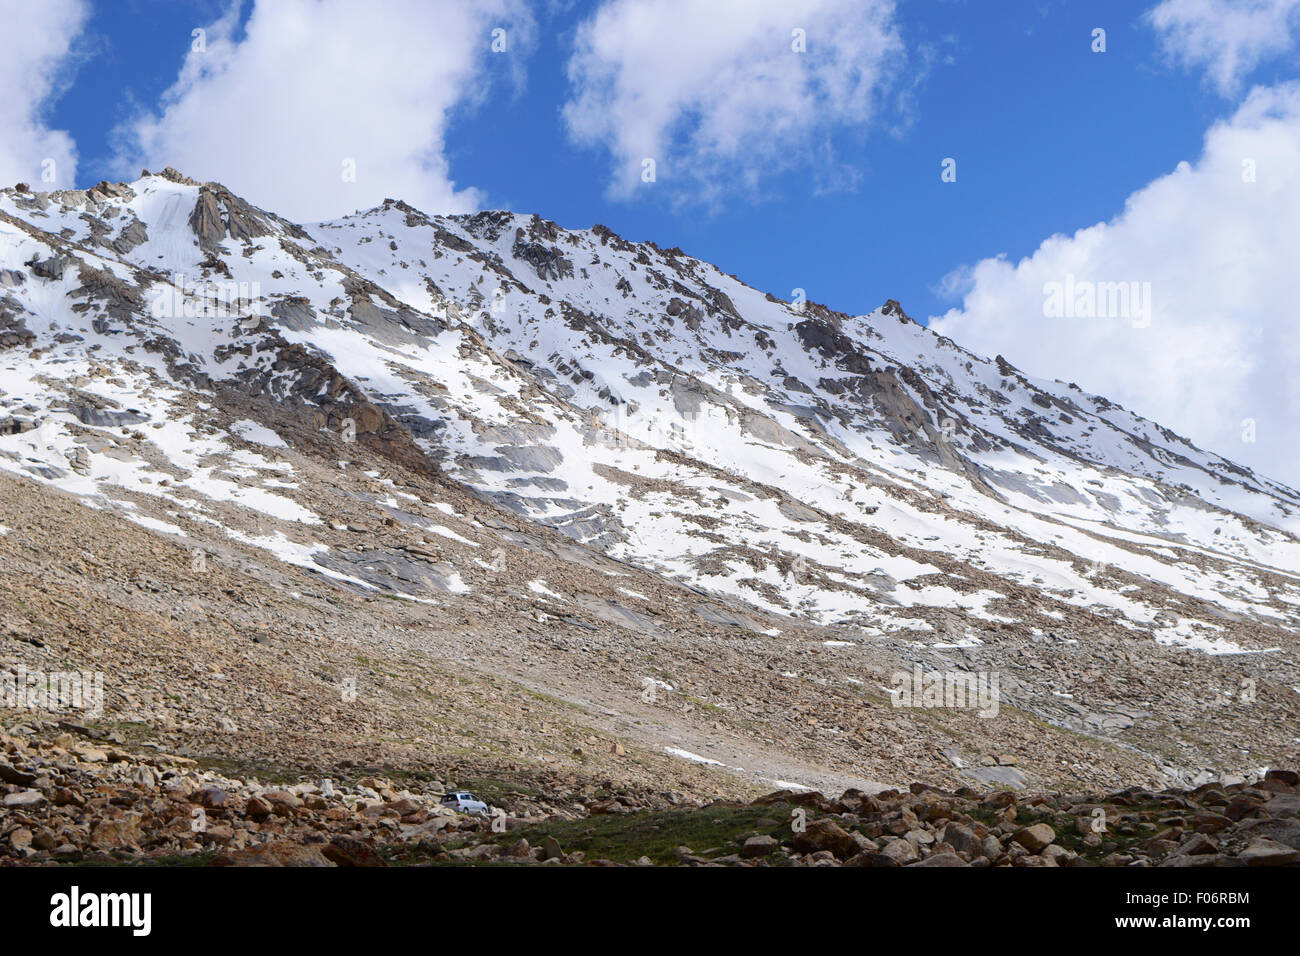 Snow Filled Himalayan Mountains in Ladakh India in the state of Jammu and Kashmir - Stock Image